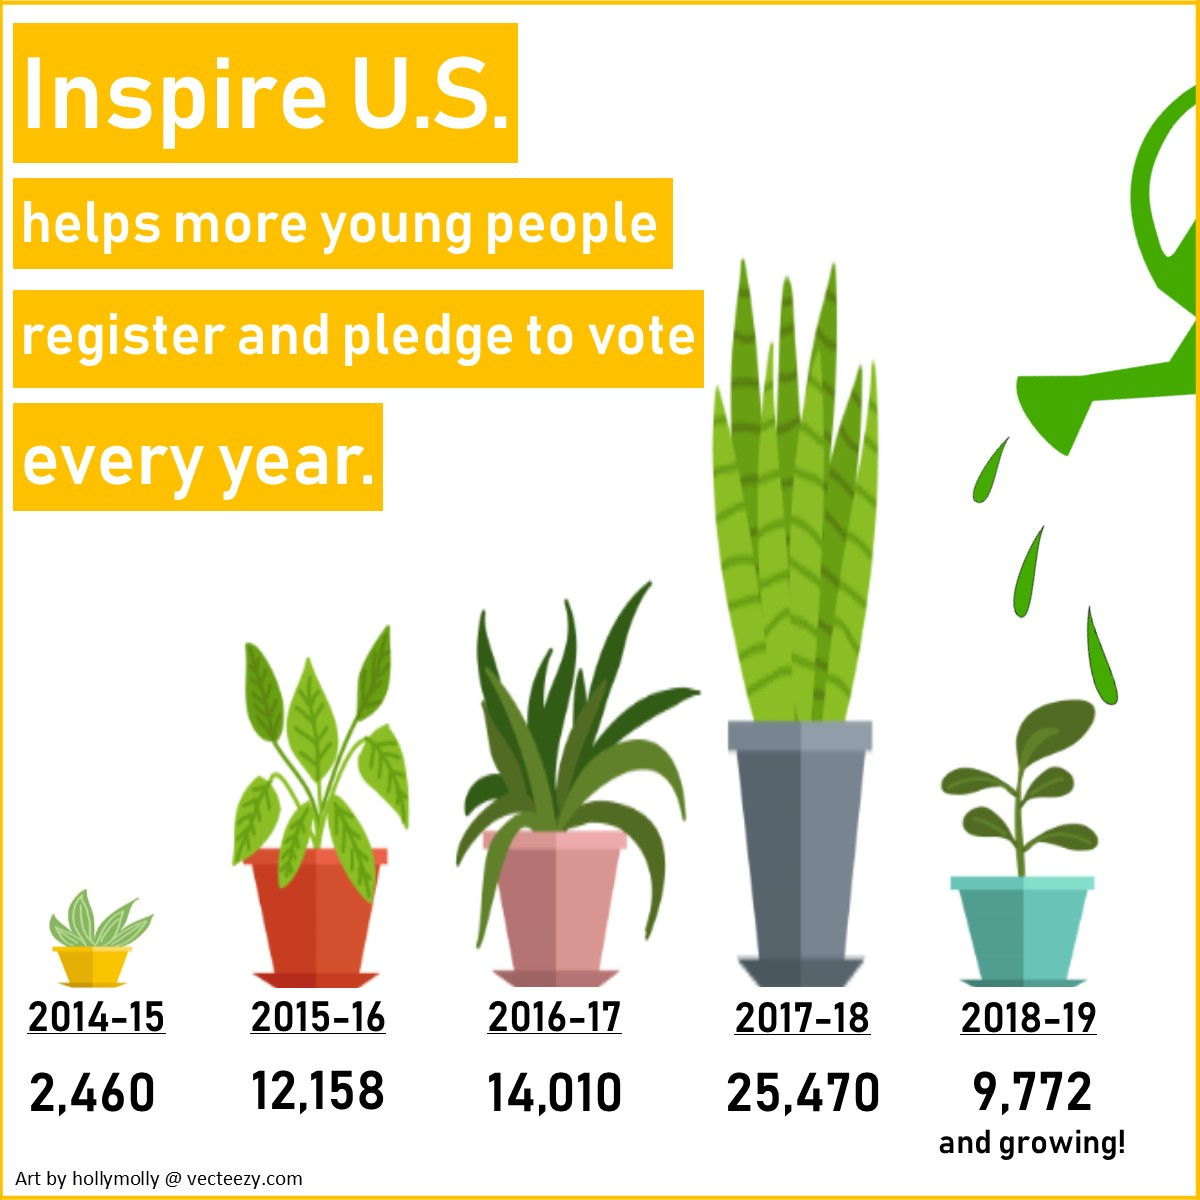 Inspire's Growth